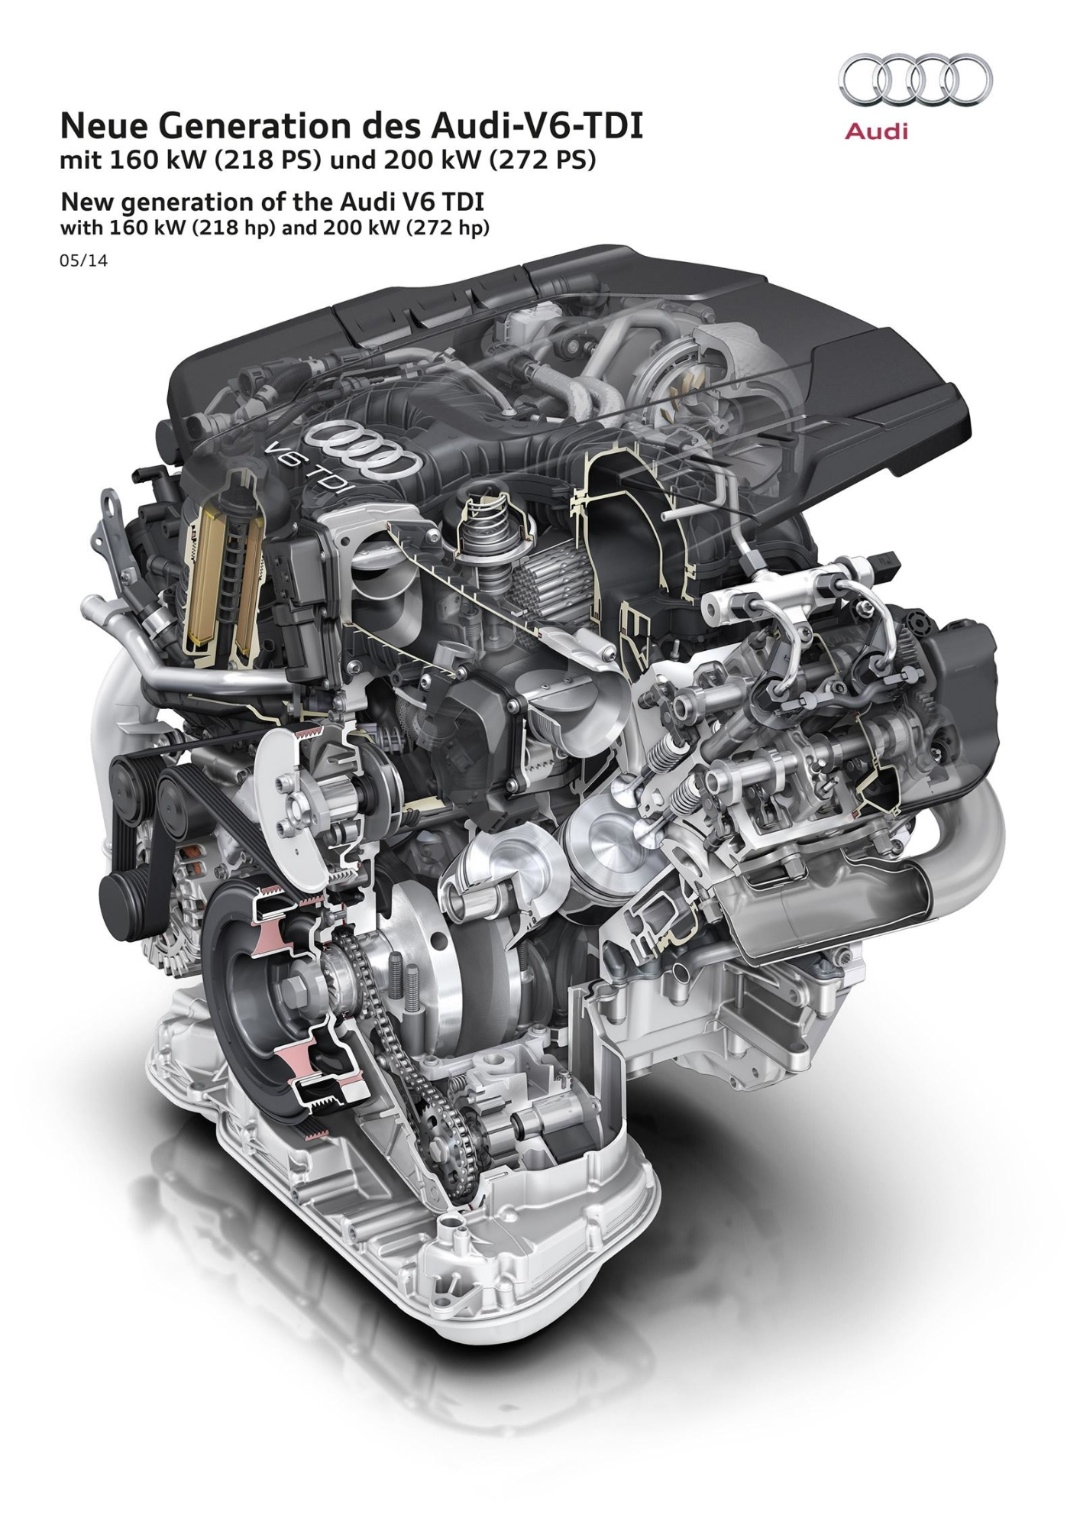 Audi Unveils Two New 3 0 V6 Tdi Clean Diesel Engines